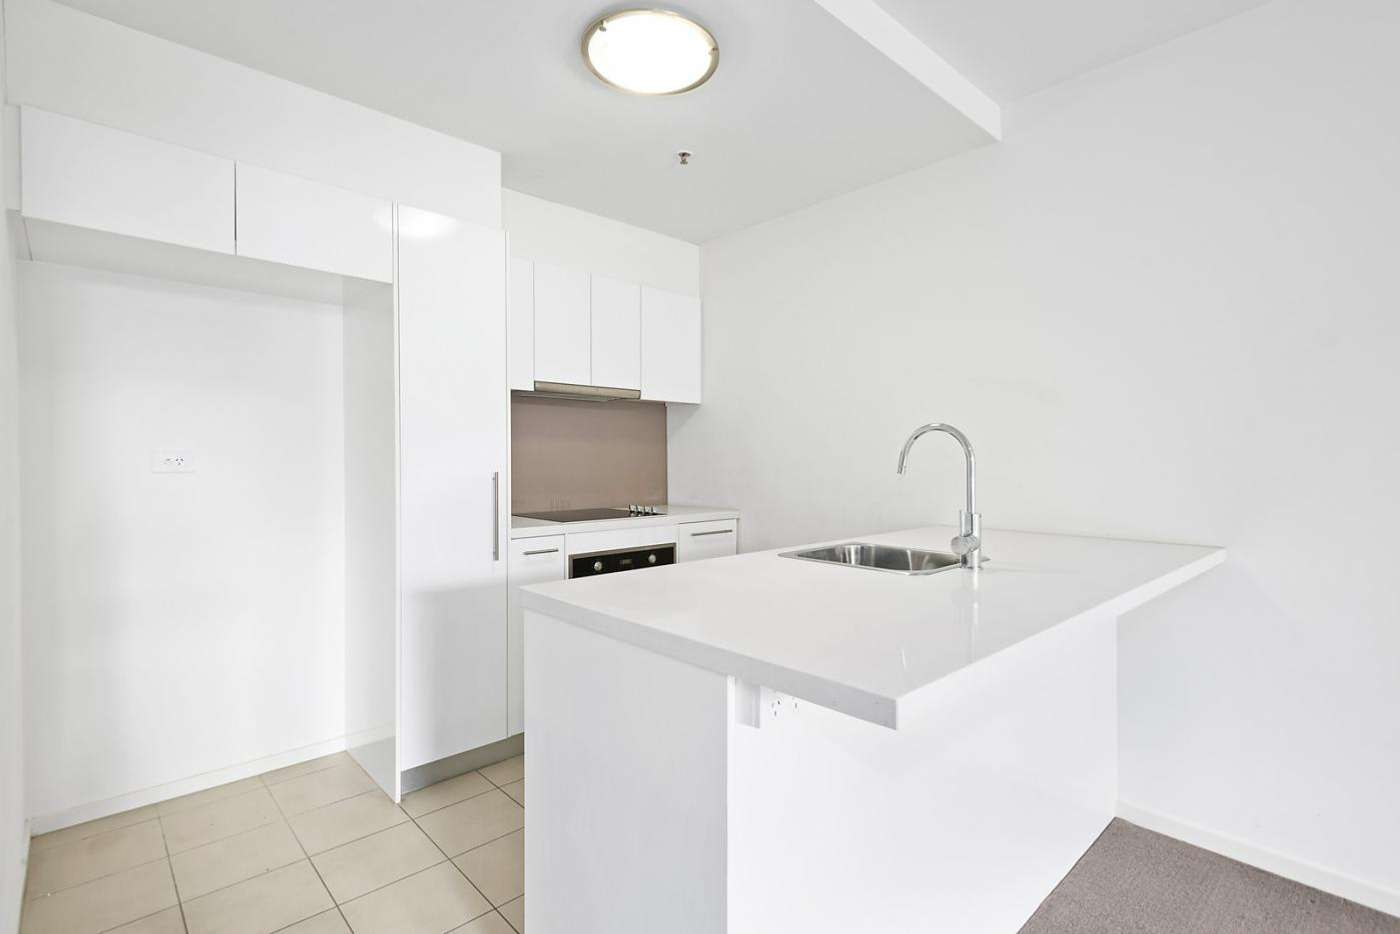 Main view of Homely apartment listing, 11/1 Duggan Street, Brunswick West VIC 3055